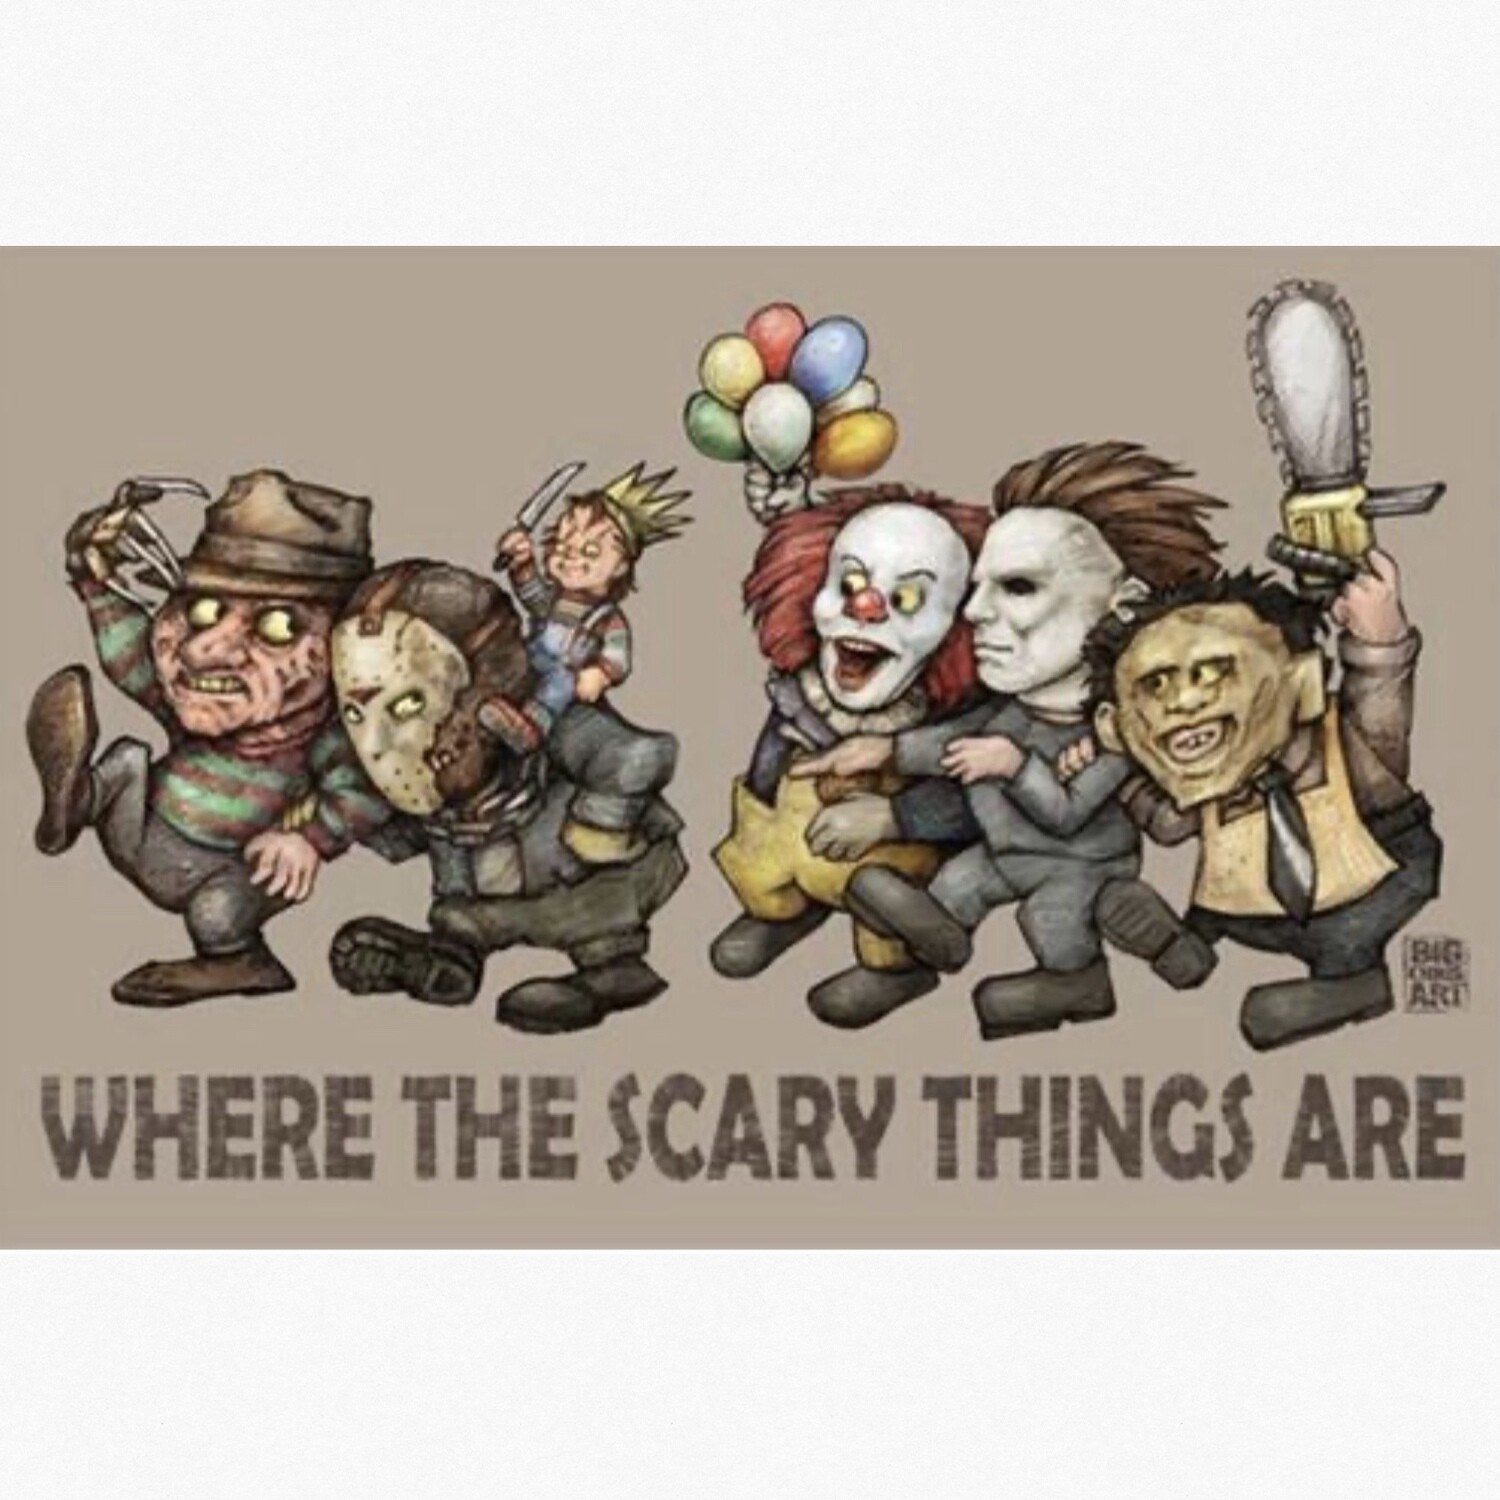 WHERE THE SCARY THINGS ARE POSTER